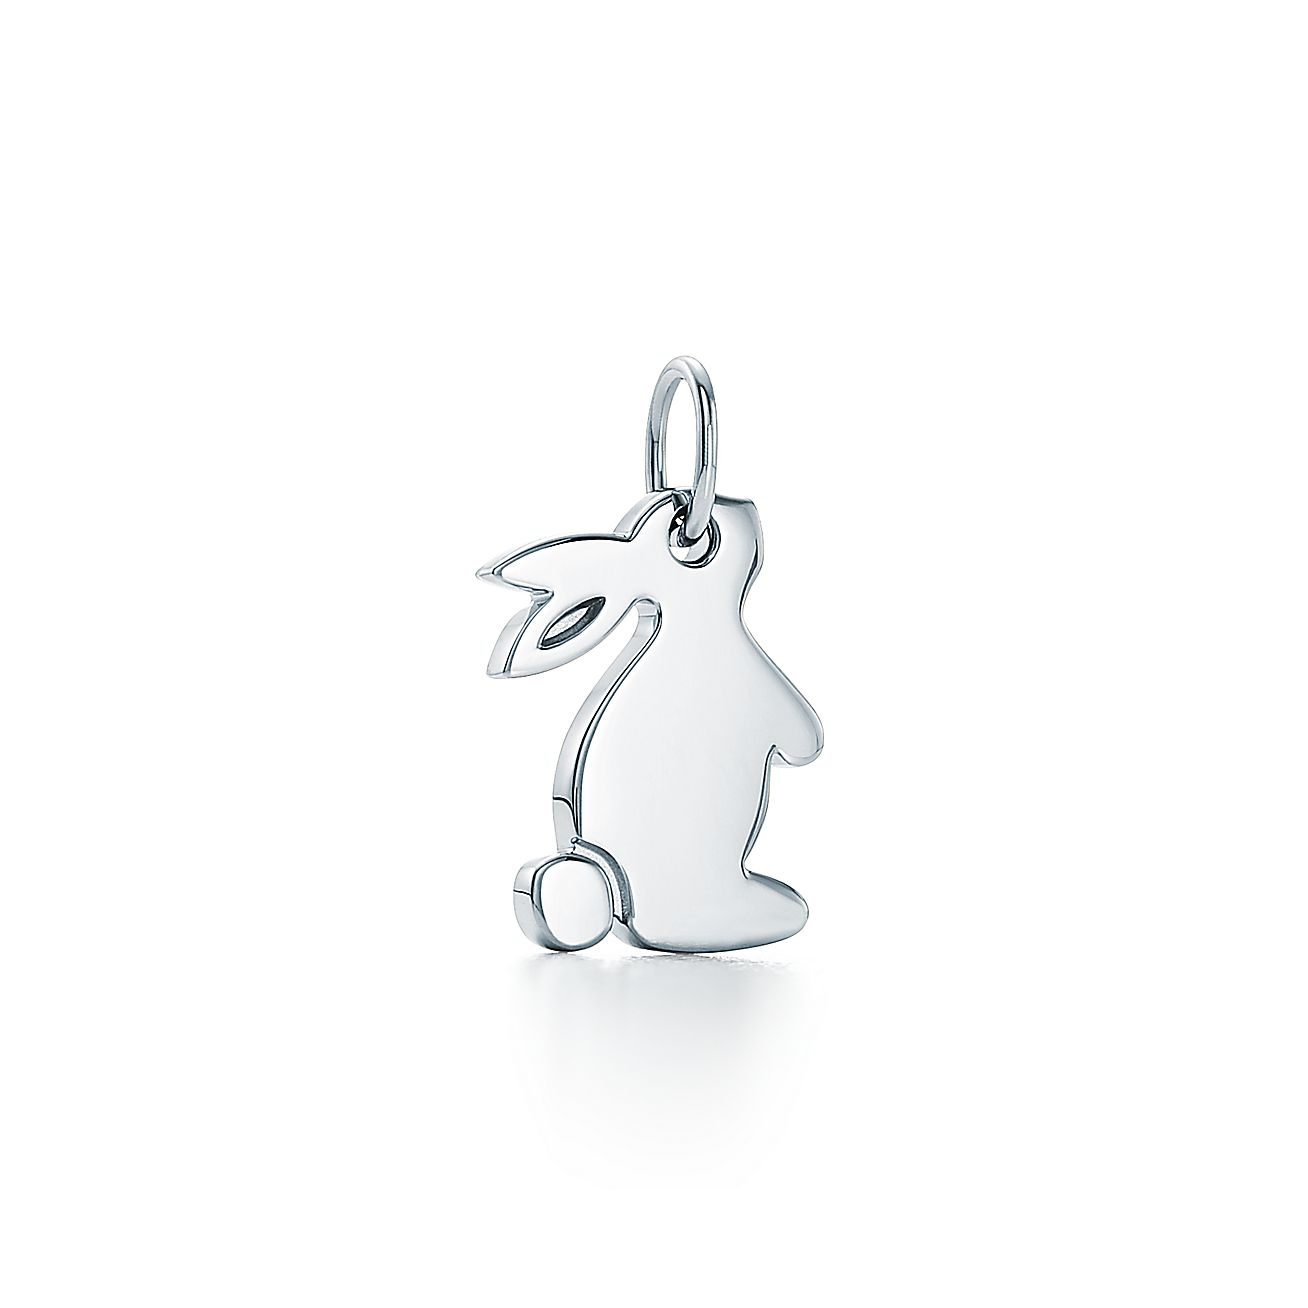 Tiffany charms snuggle bunny charm in sterling silver tiffany co aloadofball Choice Image